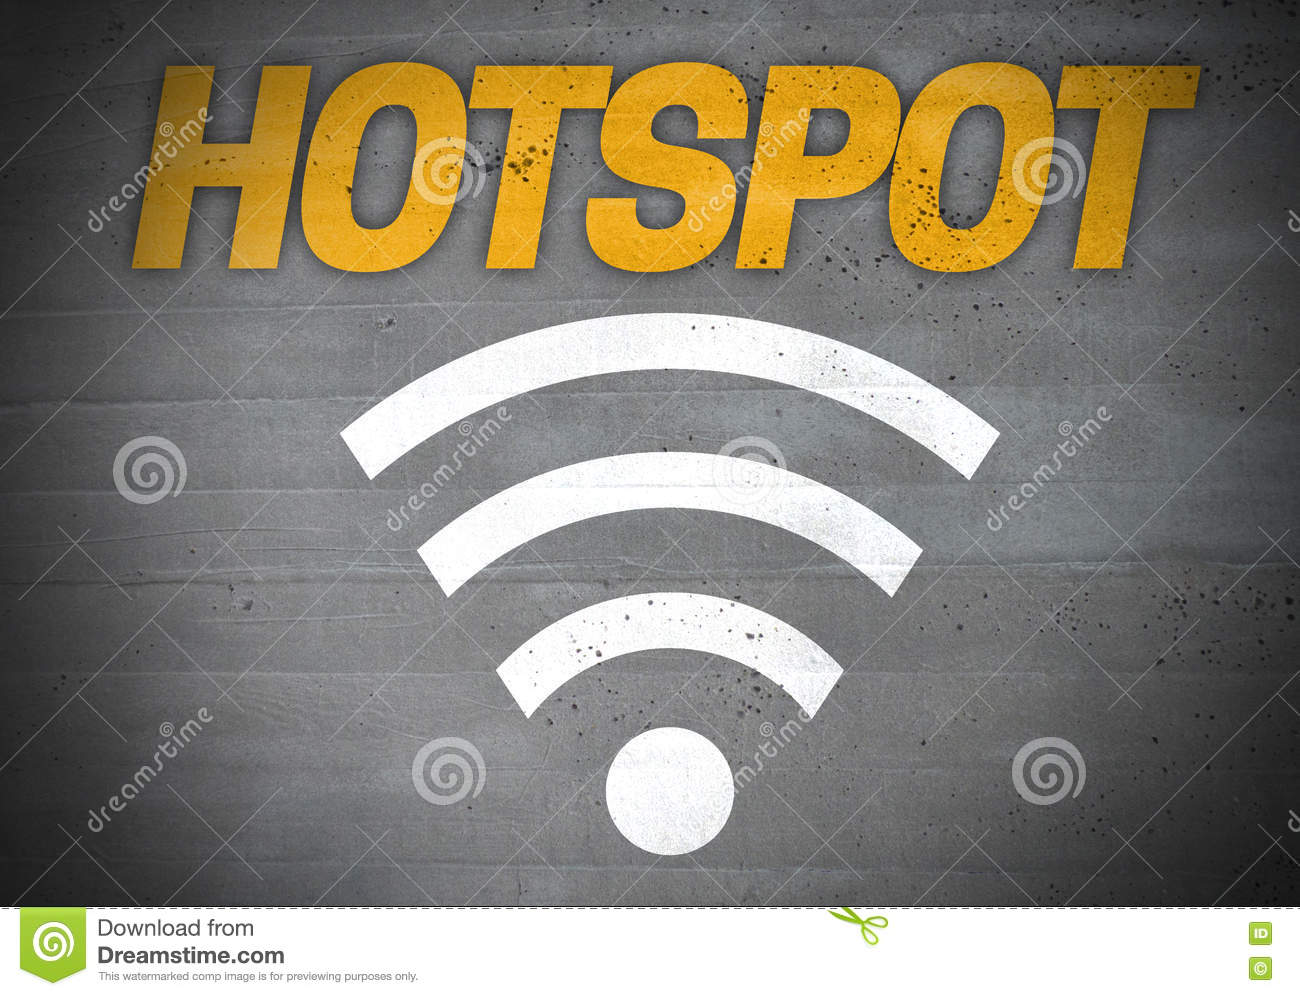 Hotspot Icon Concept Background Stock Photo - Image of gray ...